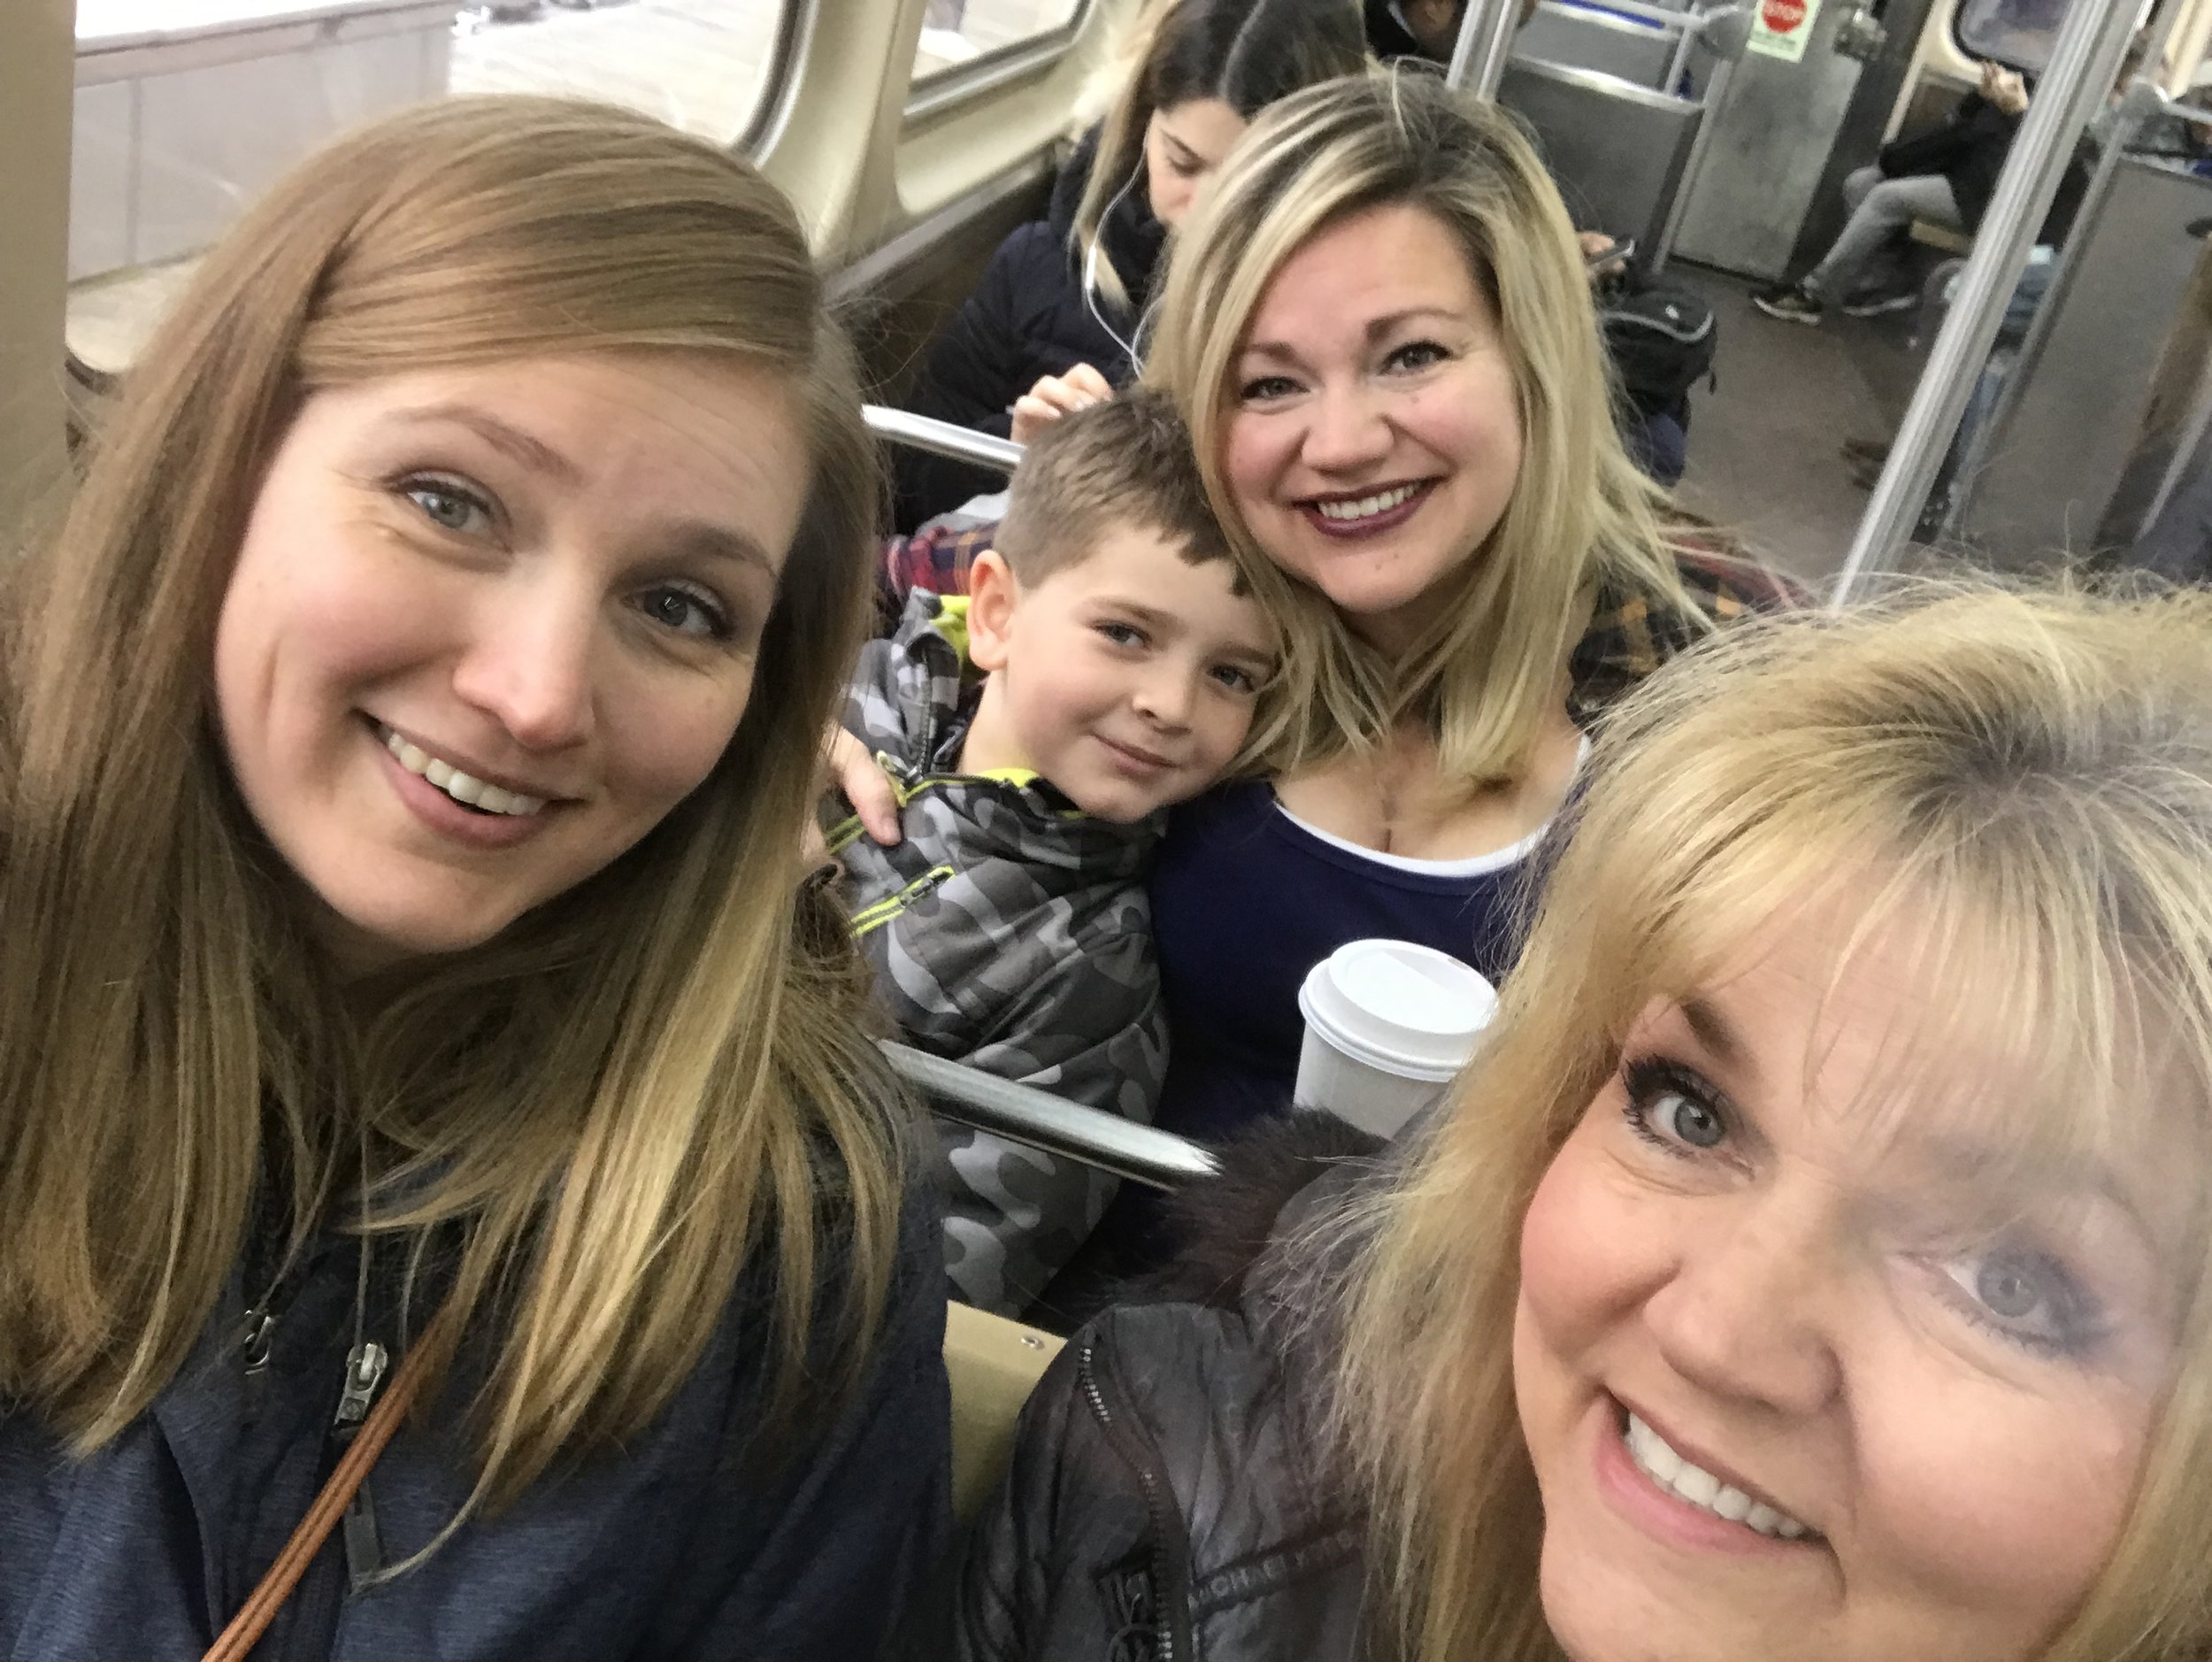 All of us on the train on my iPhone. Carl rarely smiles for photos, so this was pretty good! I'm sure there are lots of photo takers with kiddos who can agree - ha!